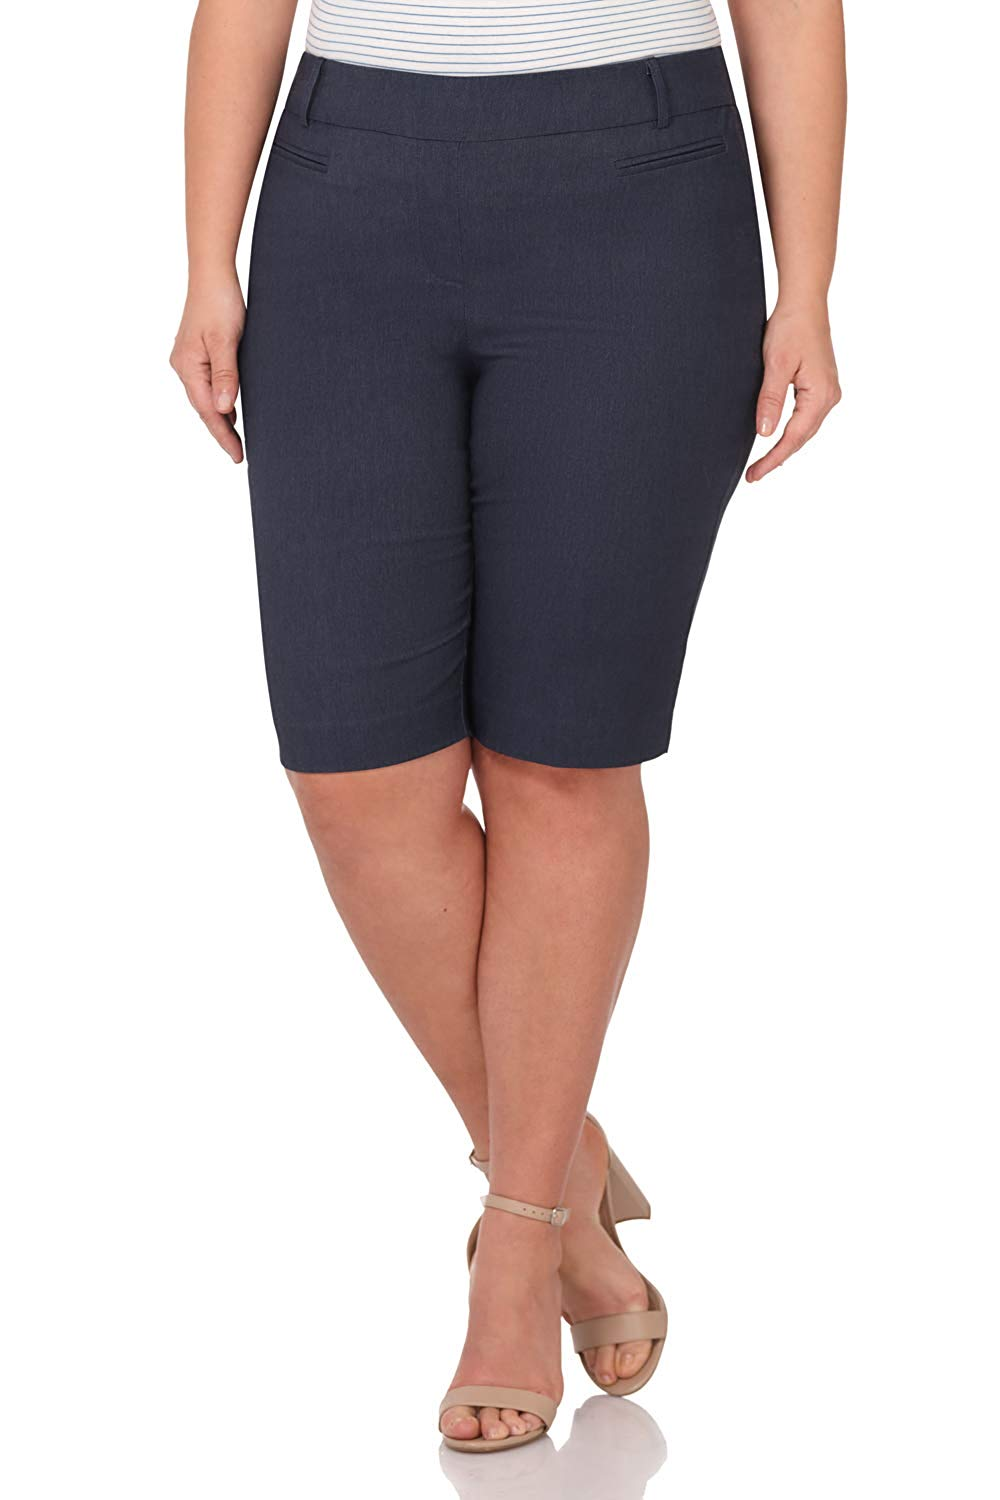 Women's Ease In To Comfort Curvy Fit Plus Size Modern City Short Cotton  Button Fly  Skinny 26 Pieces